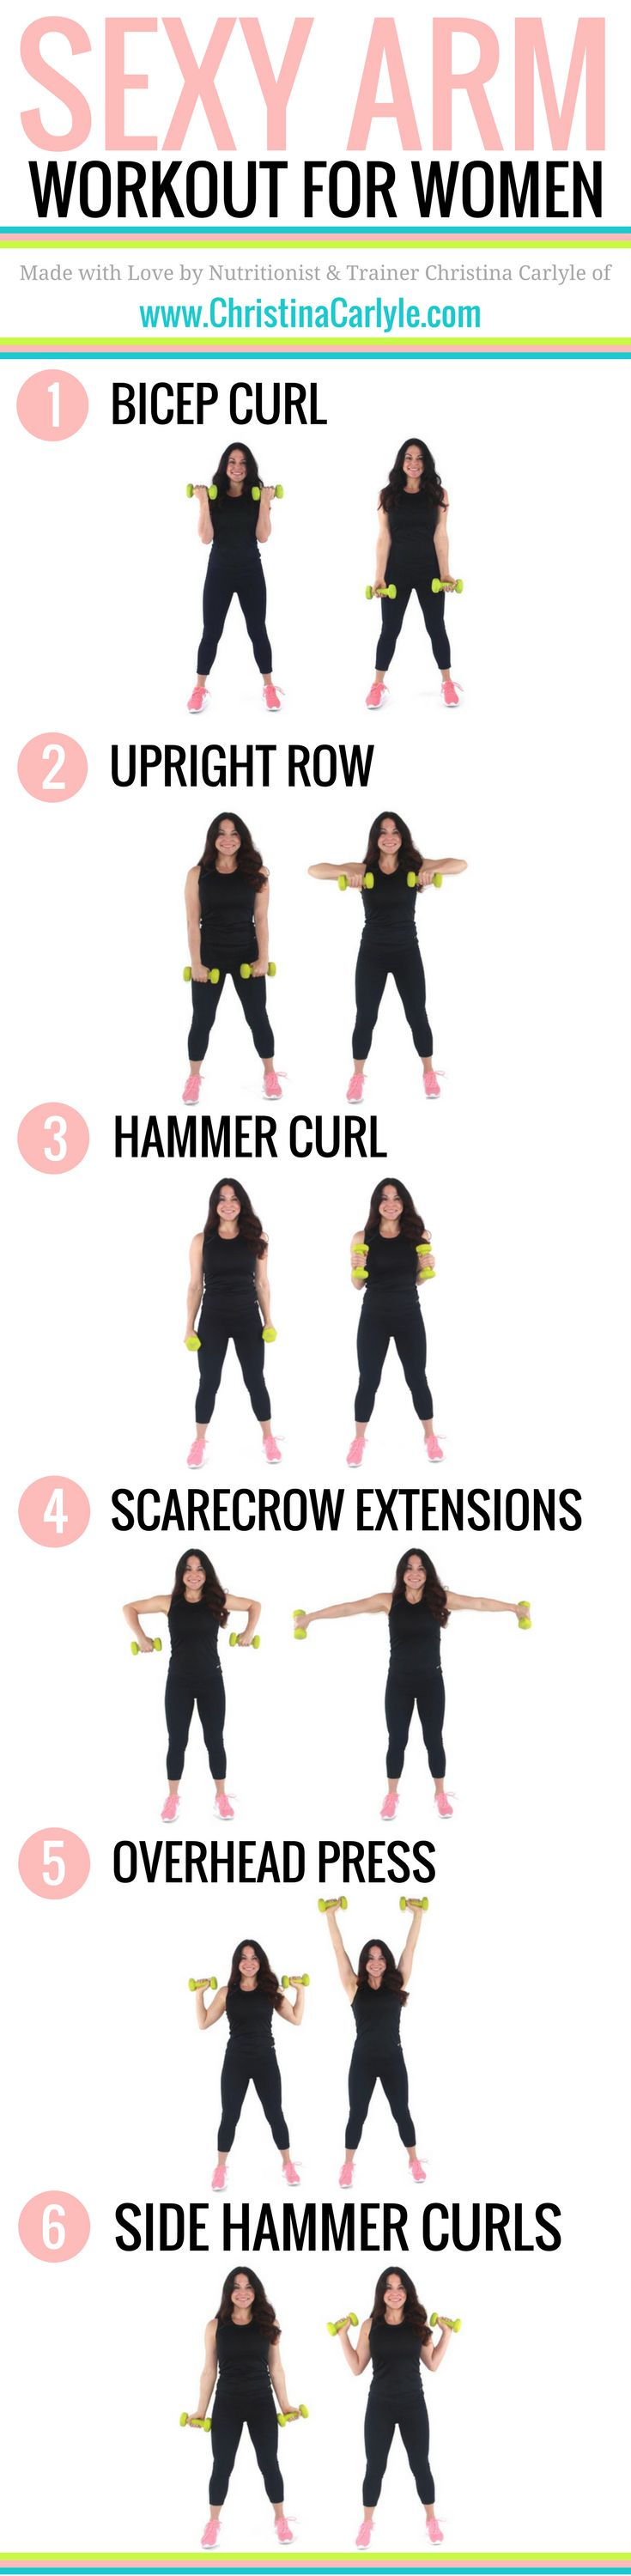 Fitness Motivation Do Your Arms Make You Self Conscious This Arm Workout For Women Will Help